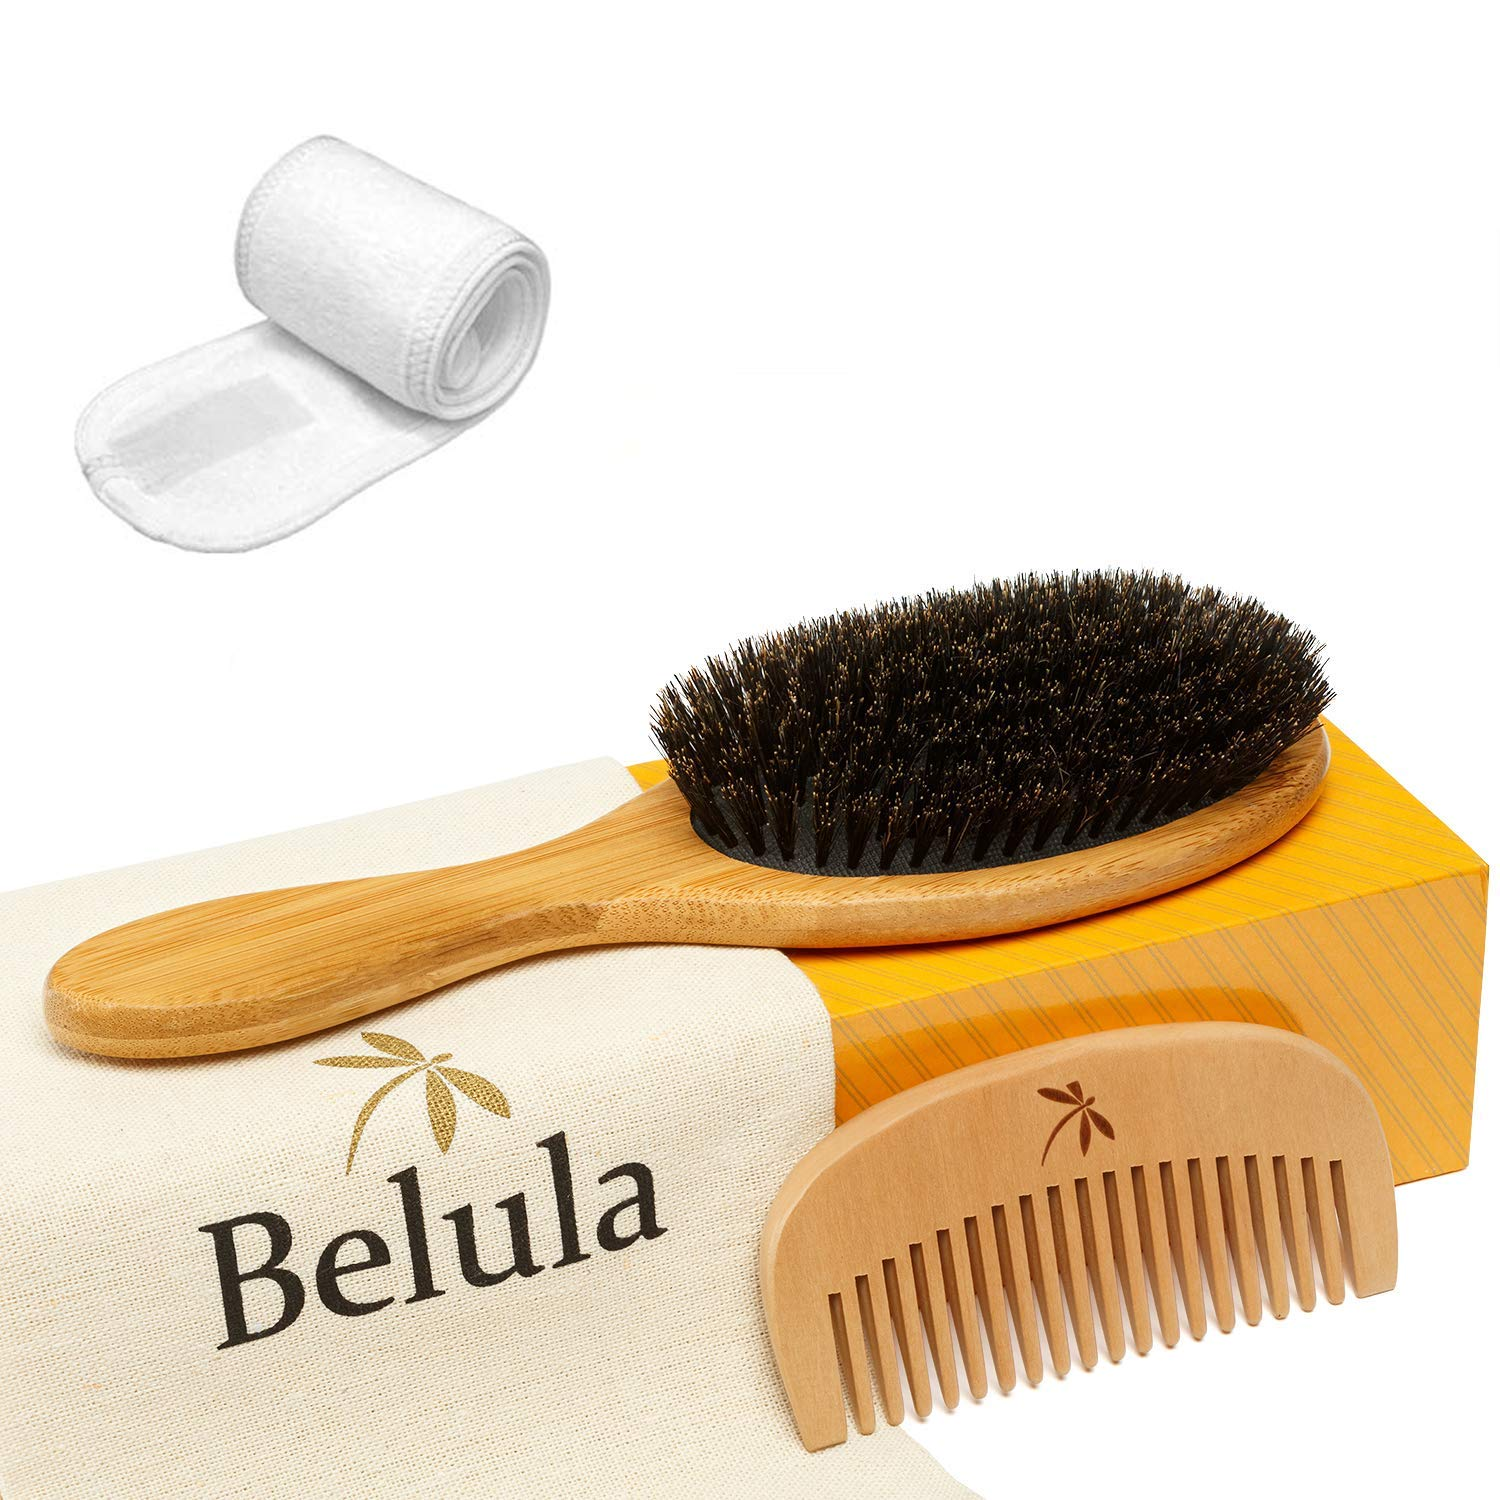 belula boar bristle hair brush on a box with a wooden comb and spa headband